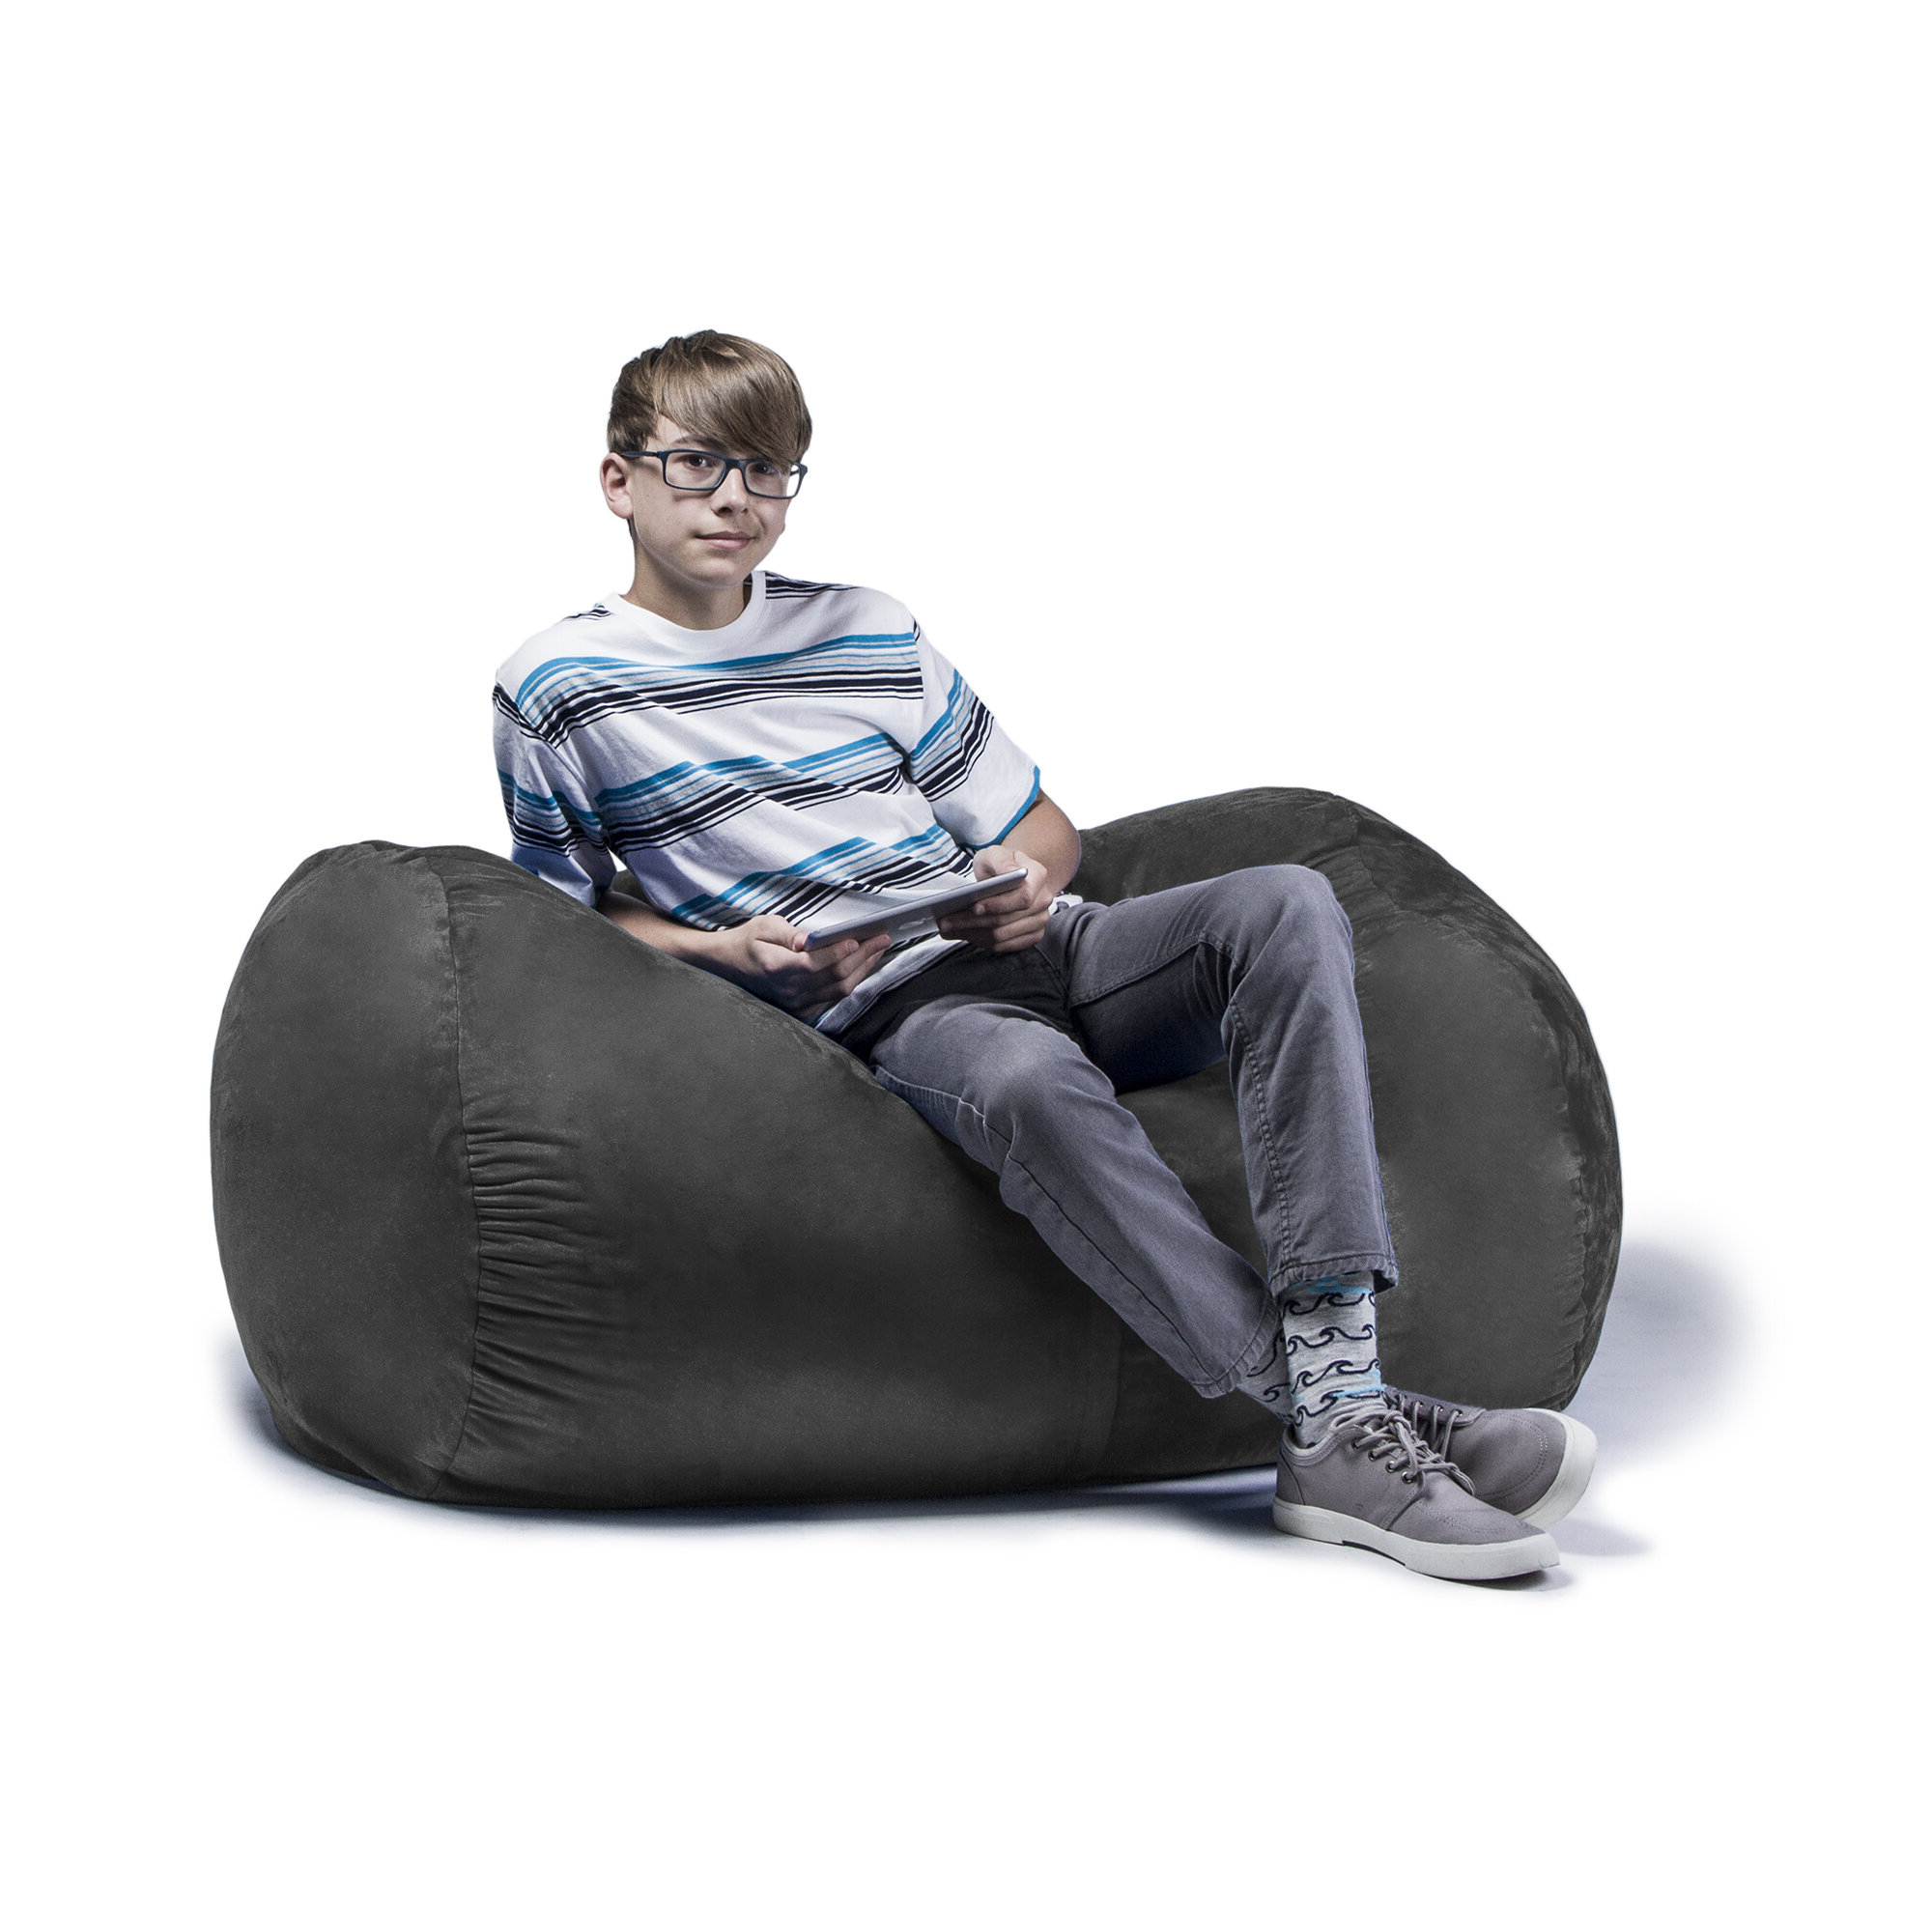 Preferred Jaxx Ponce Outdoor Bean Bag Patio Chairs Pertaining To Jaxx Jr. Bean Bag Lounger (Gallery 23 of 25)